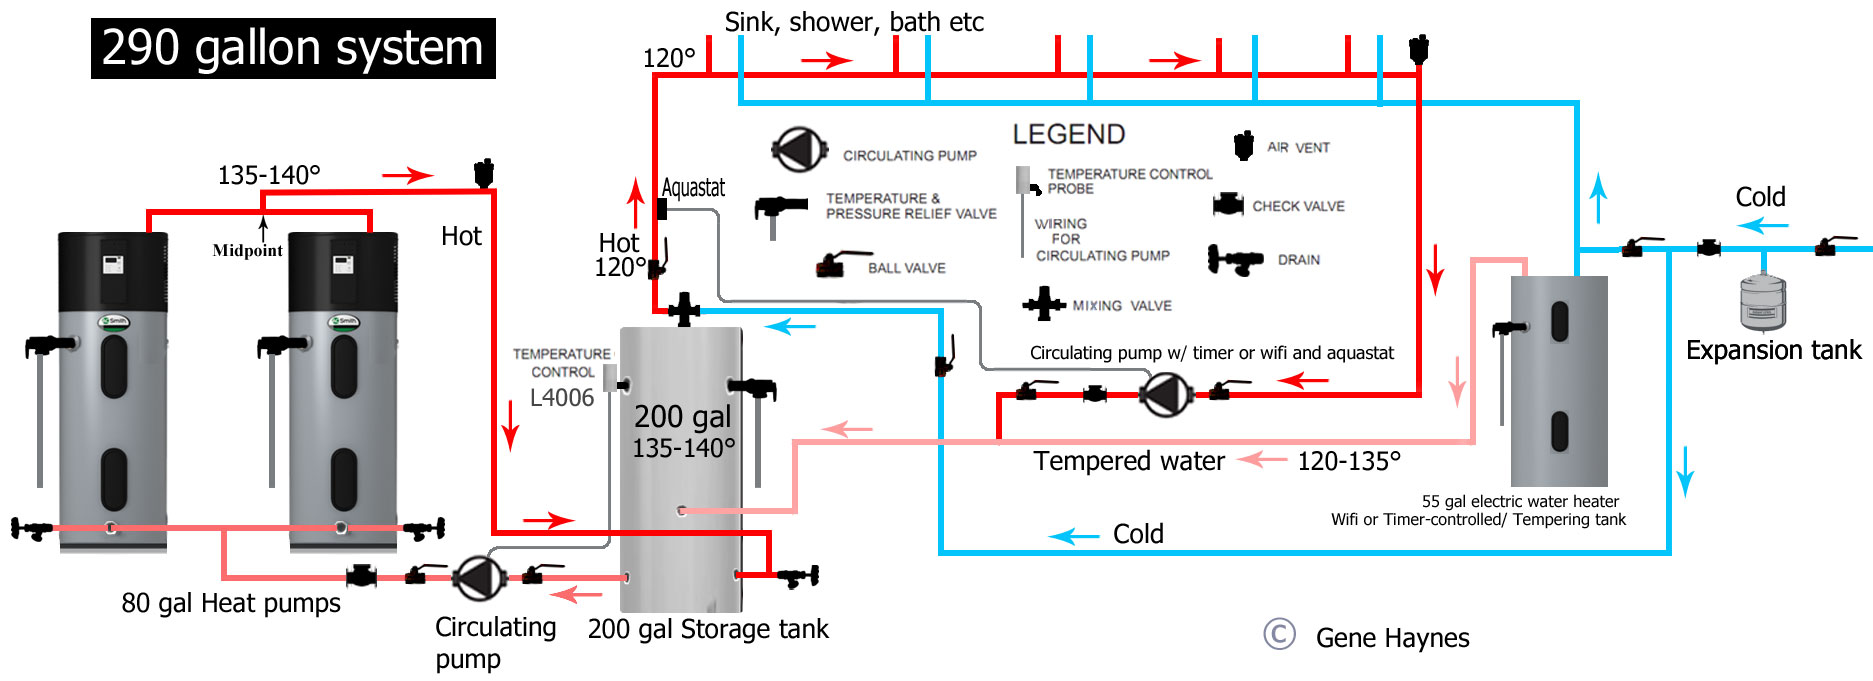 How To Install Two Water Heaters Typical Hot Heater Wiring Diagram Storage Tank And Heat Pump Purpose Increase Capacity Meet High Volume Demand Typically A Gas Is Used For Systems